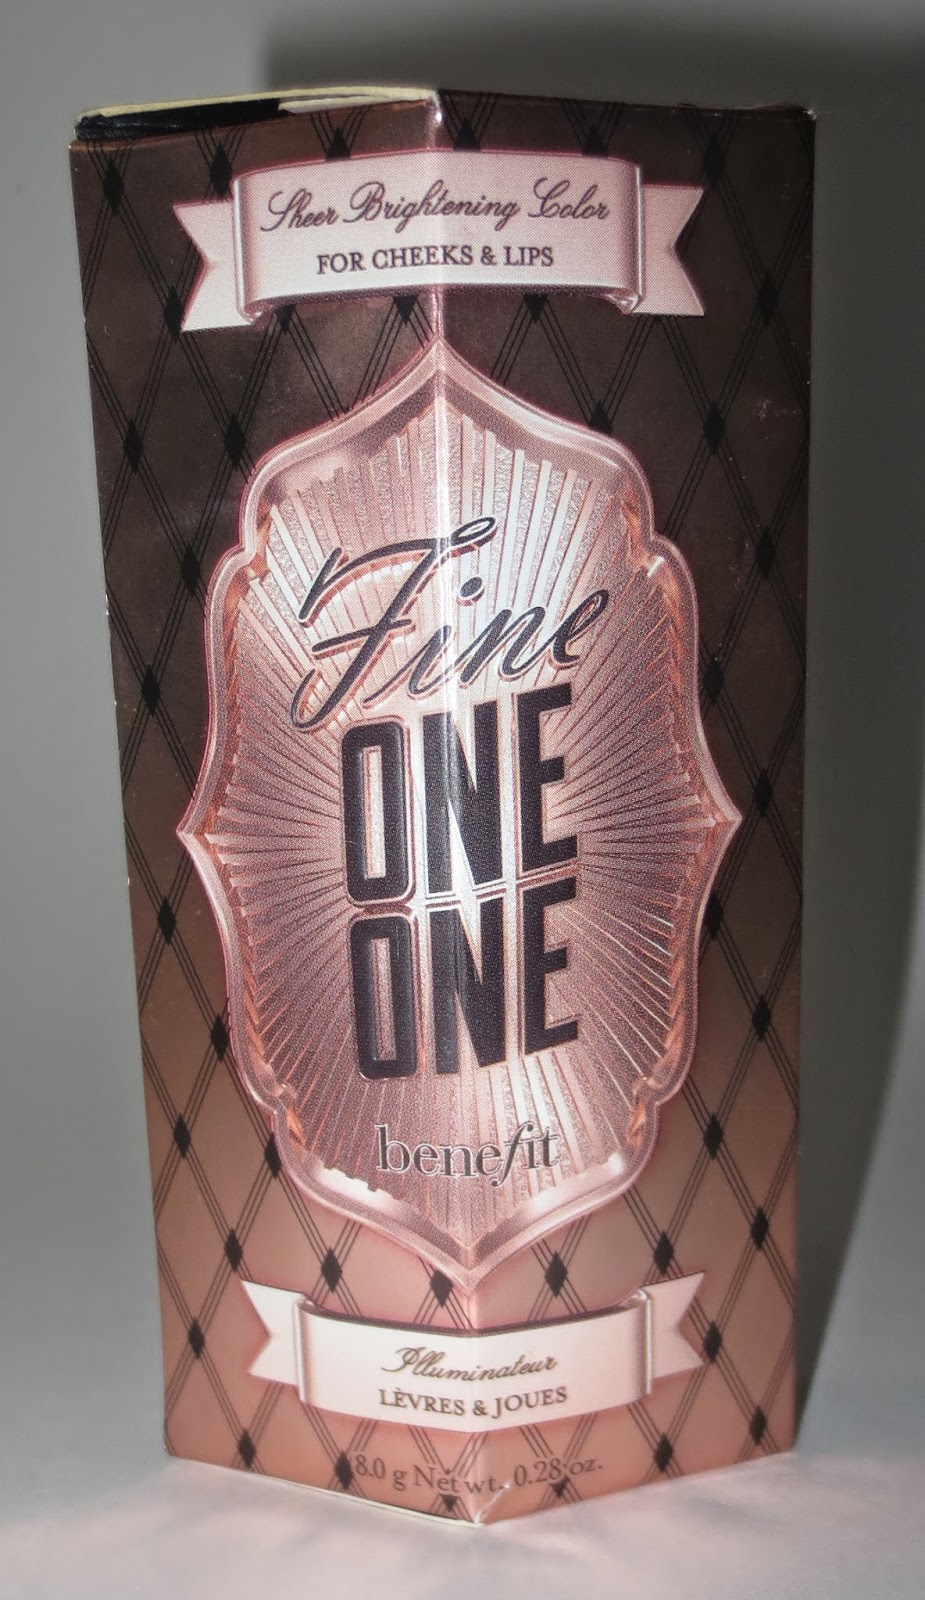 Benefit Fine One One Packaging